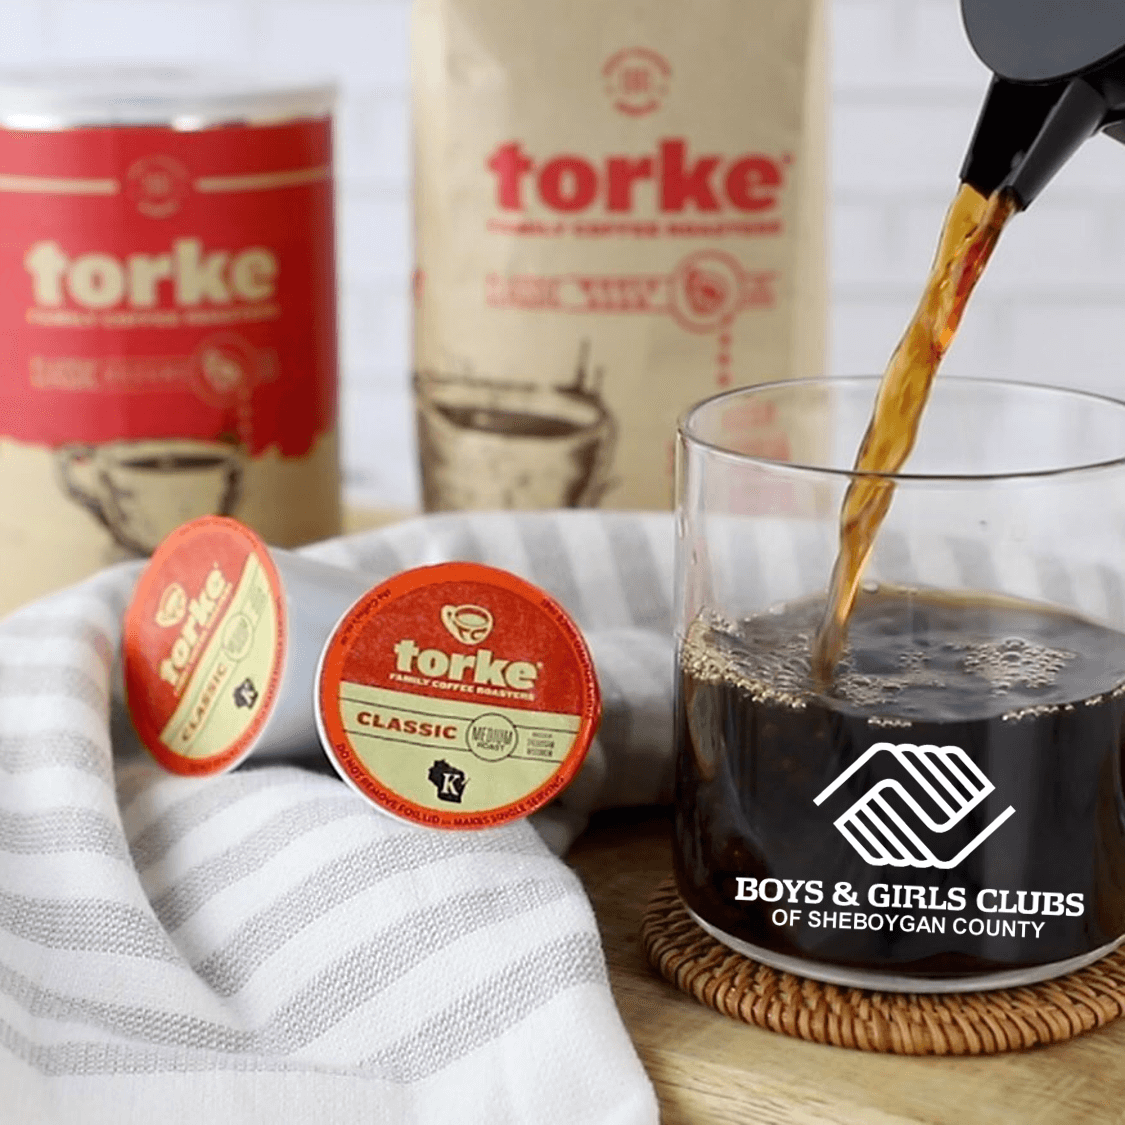 Torke-Every-Cup-Gives-boys-girls-clubs-sheboygan-county